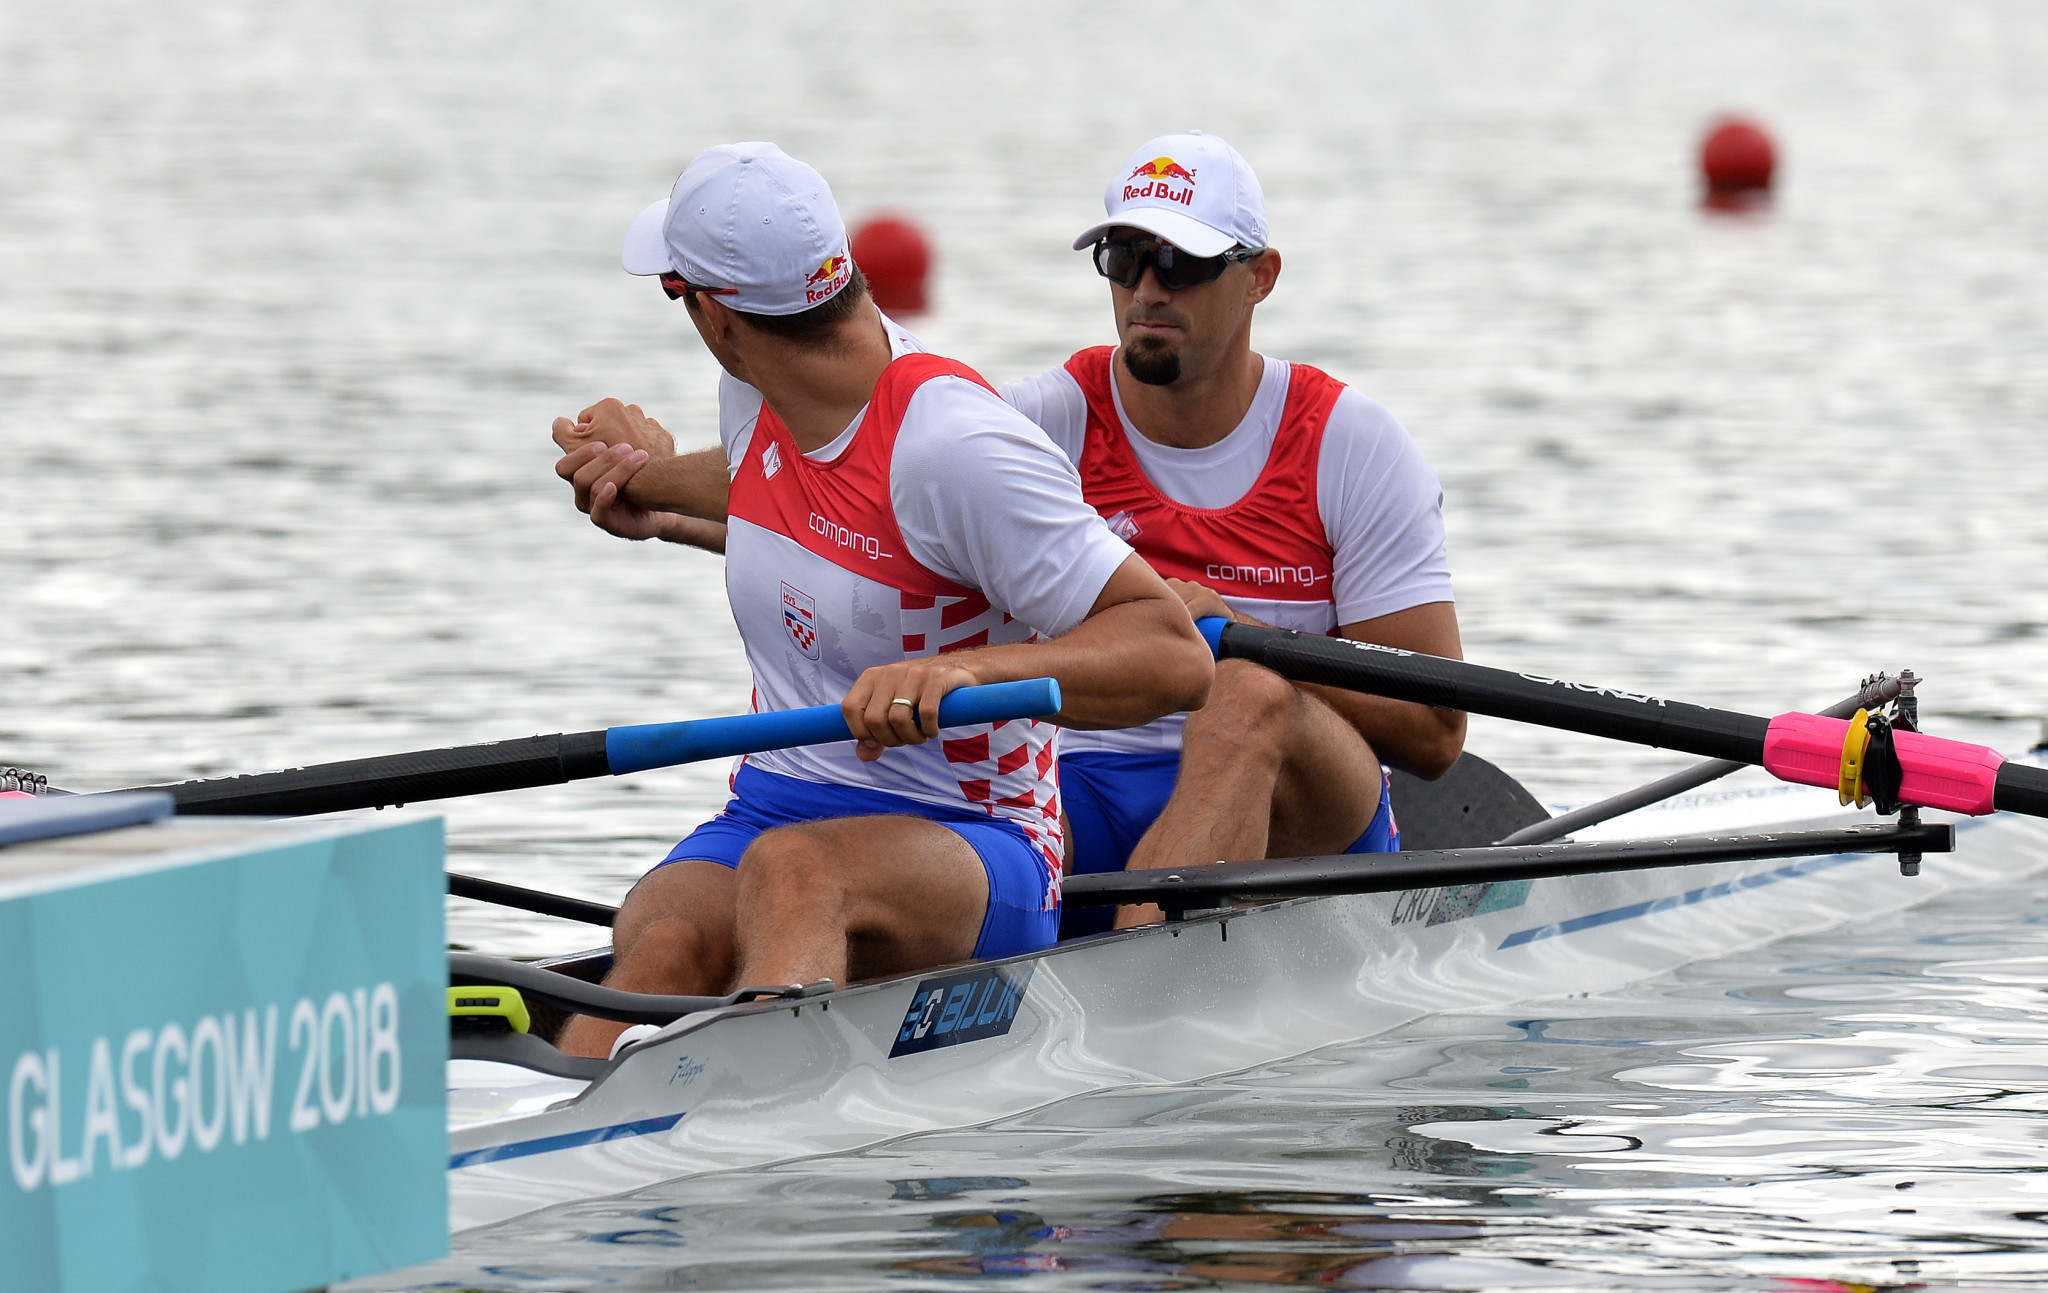 World champions Martin and Valent Sinković of Croatia were among the qualifiers in the men's pair event ©Getty Images